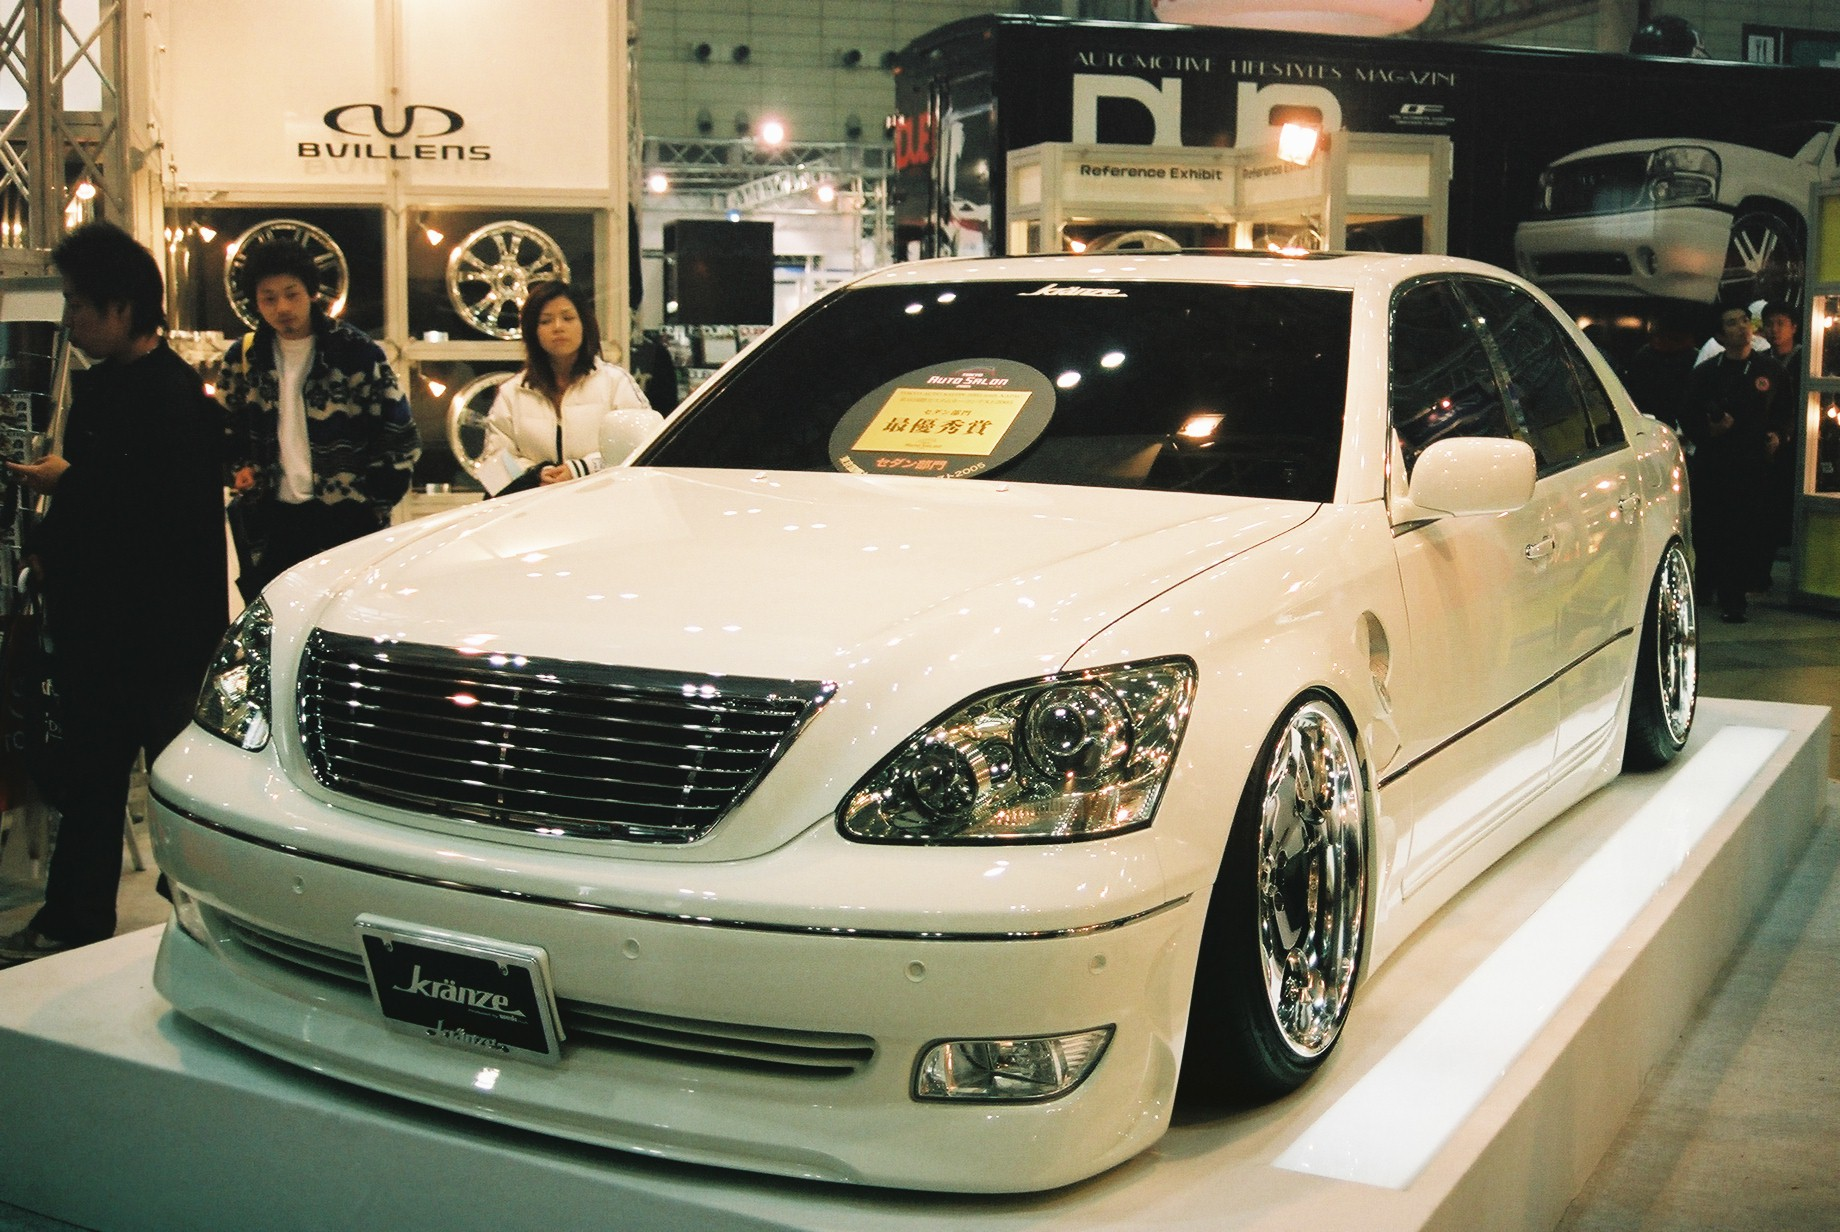 A wonderful VIP-styled Toyota